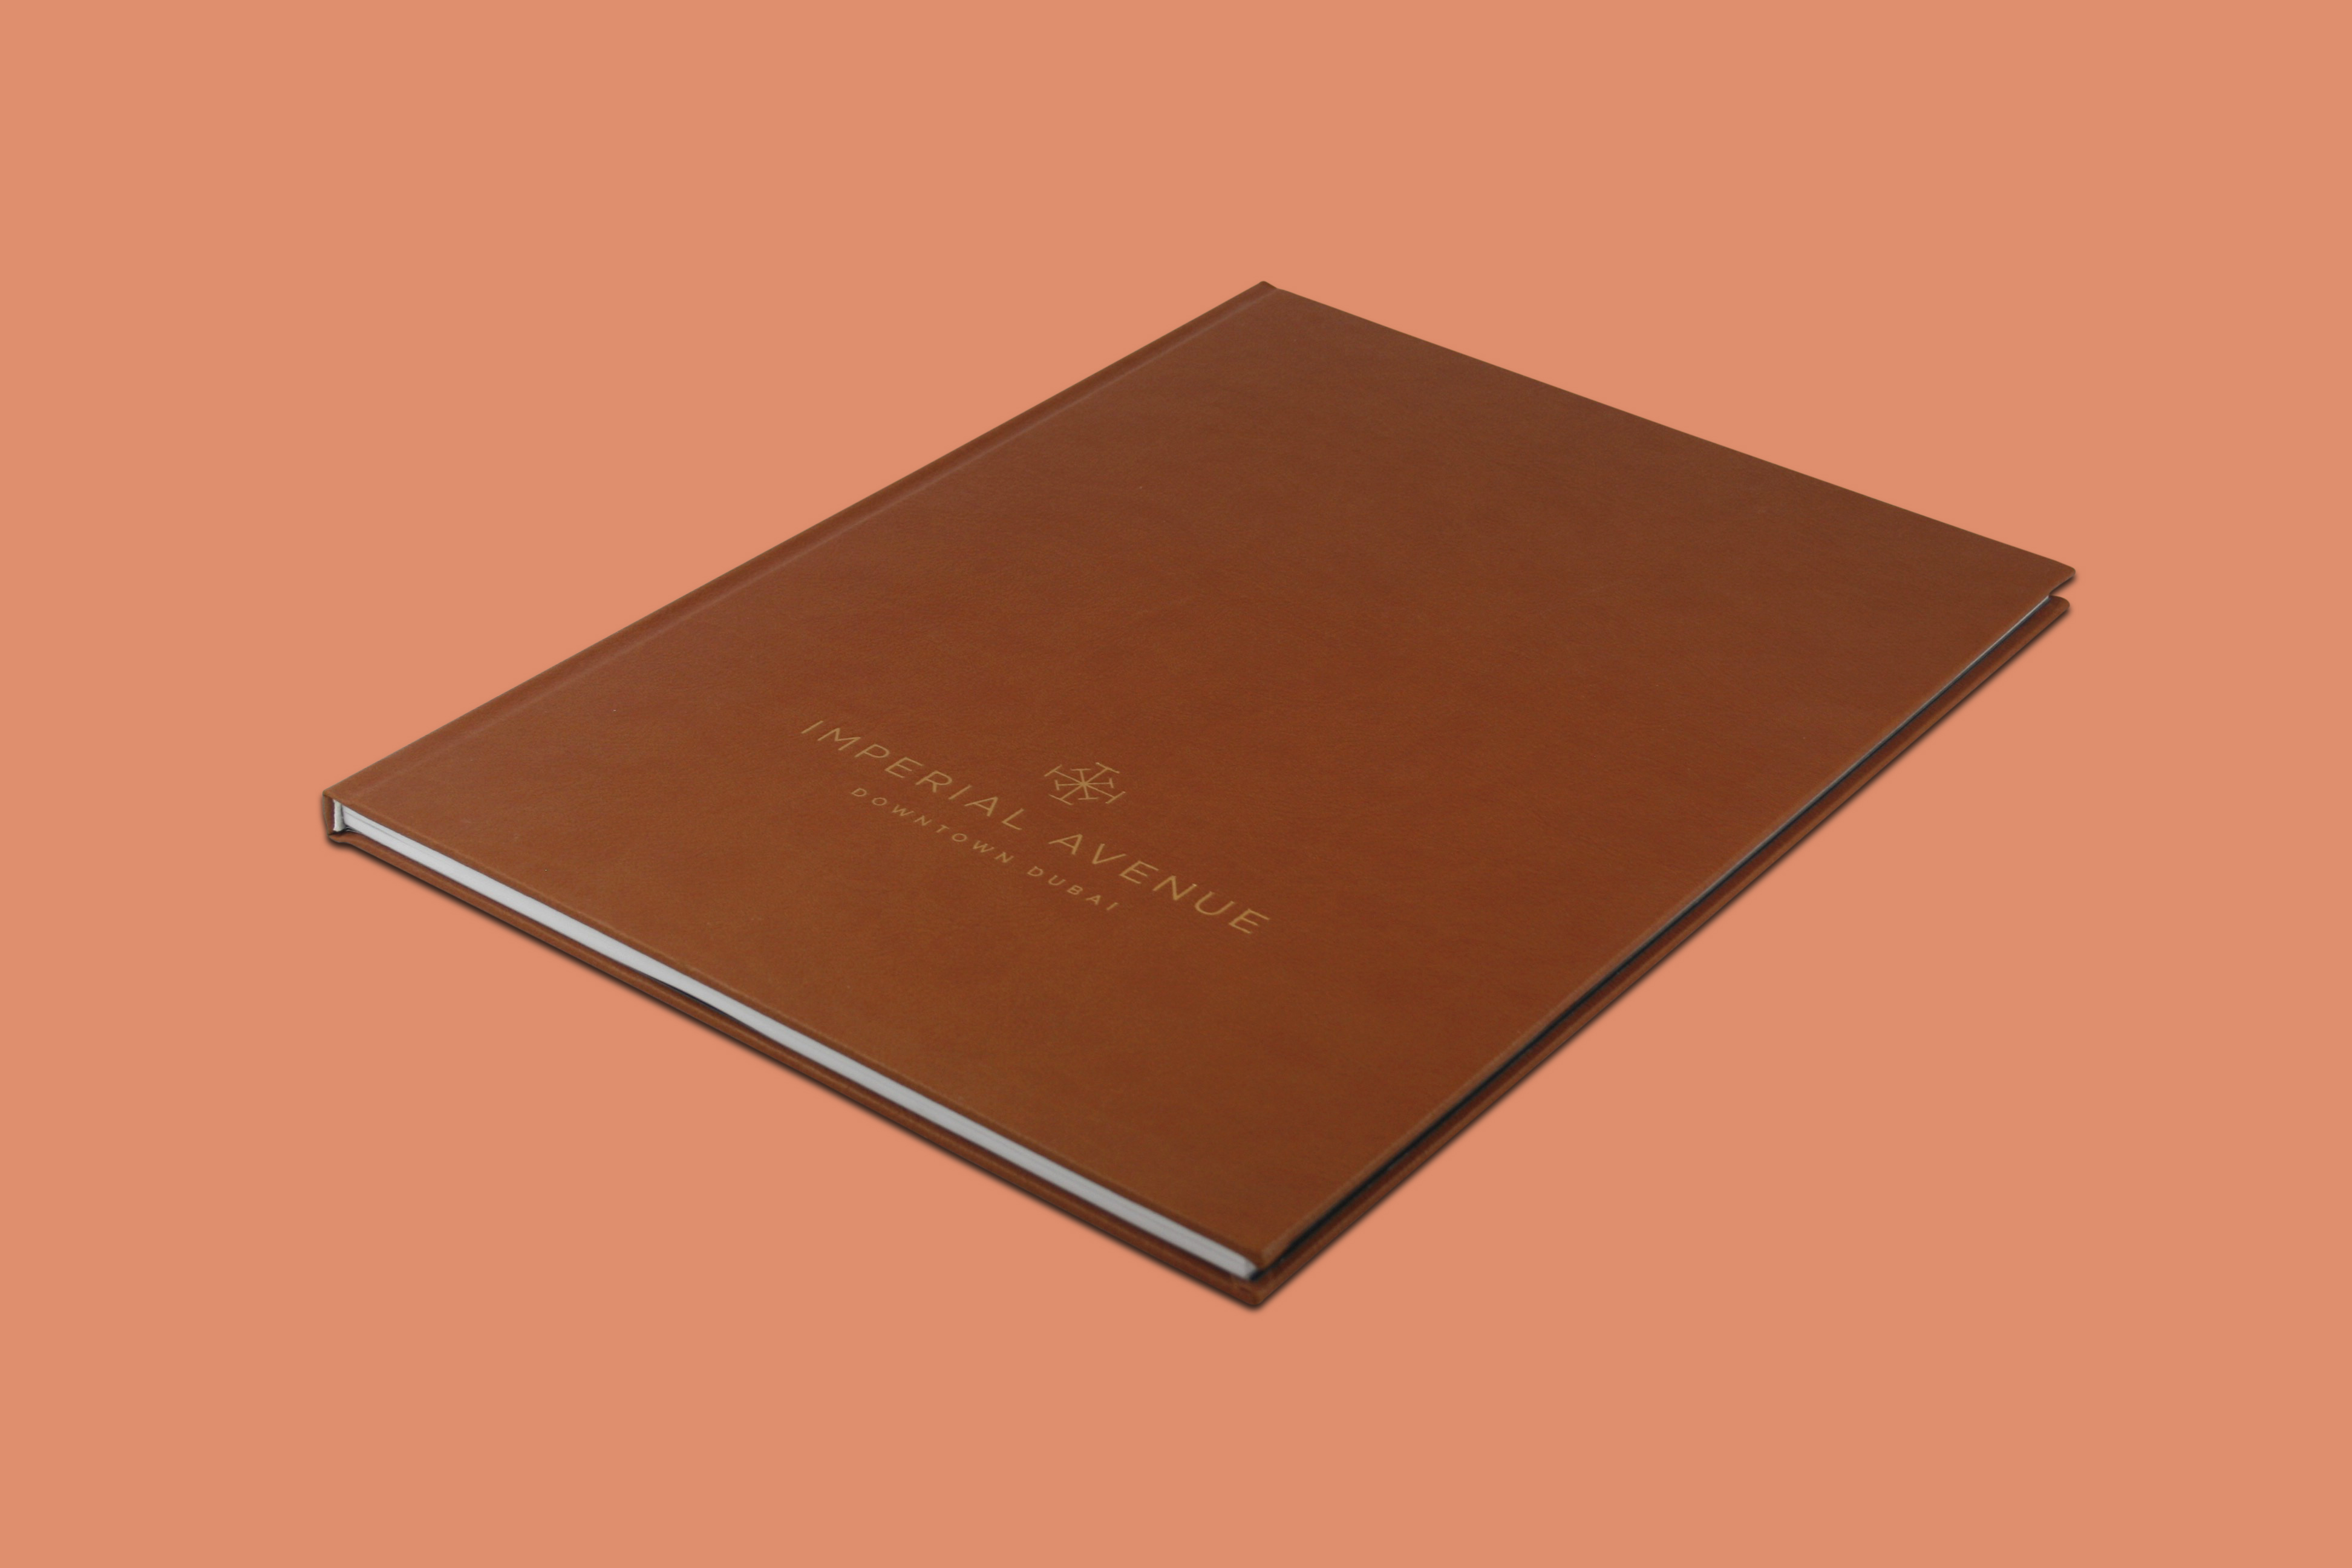 Hardcase Brochure With Brown PU Leather